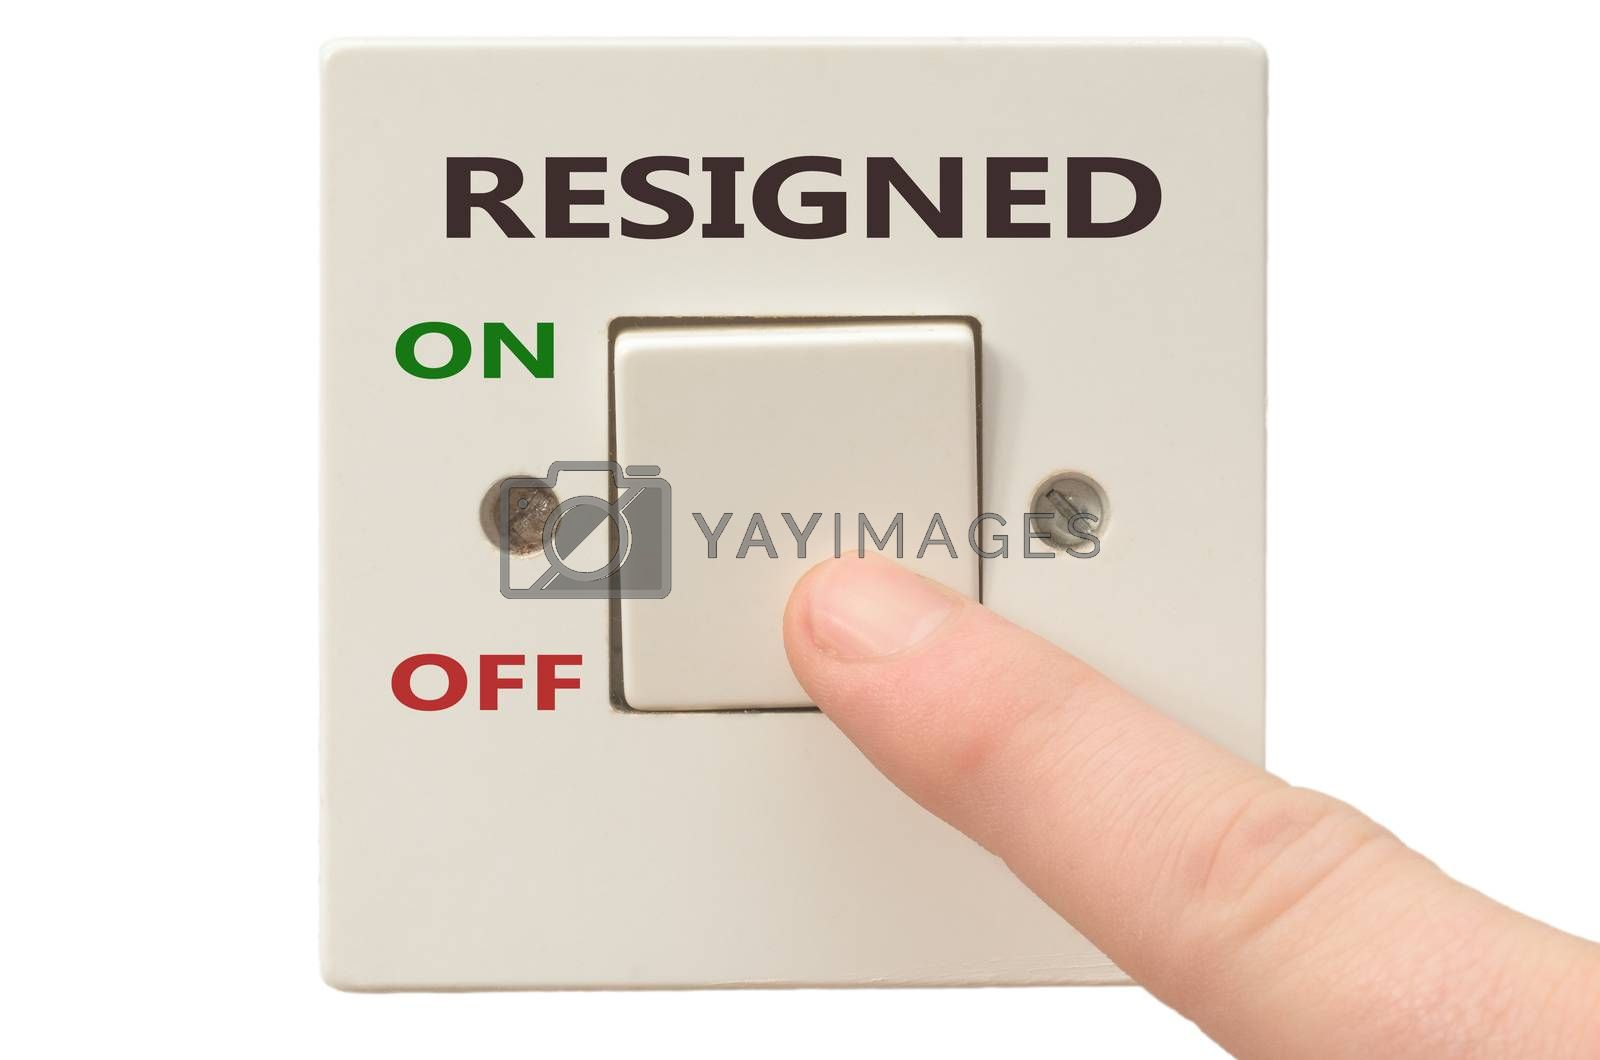 Turning off Resigned with finger on electrical switch